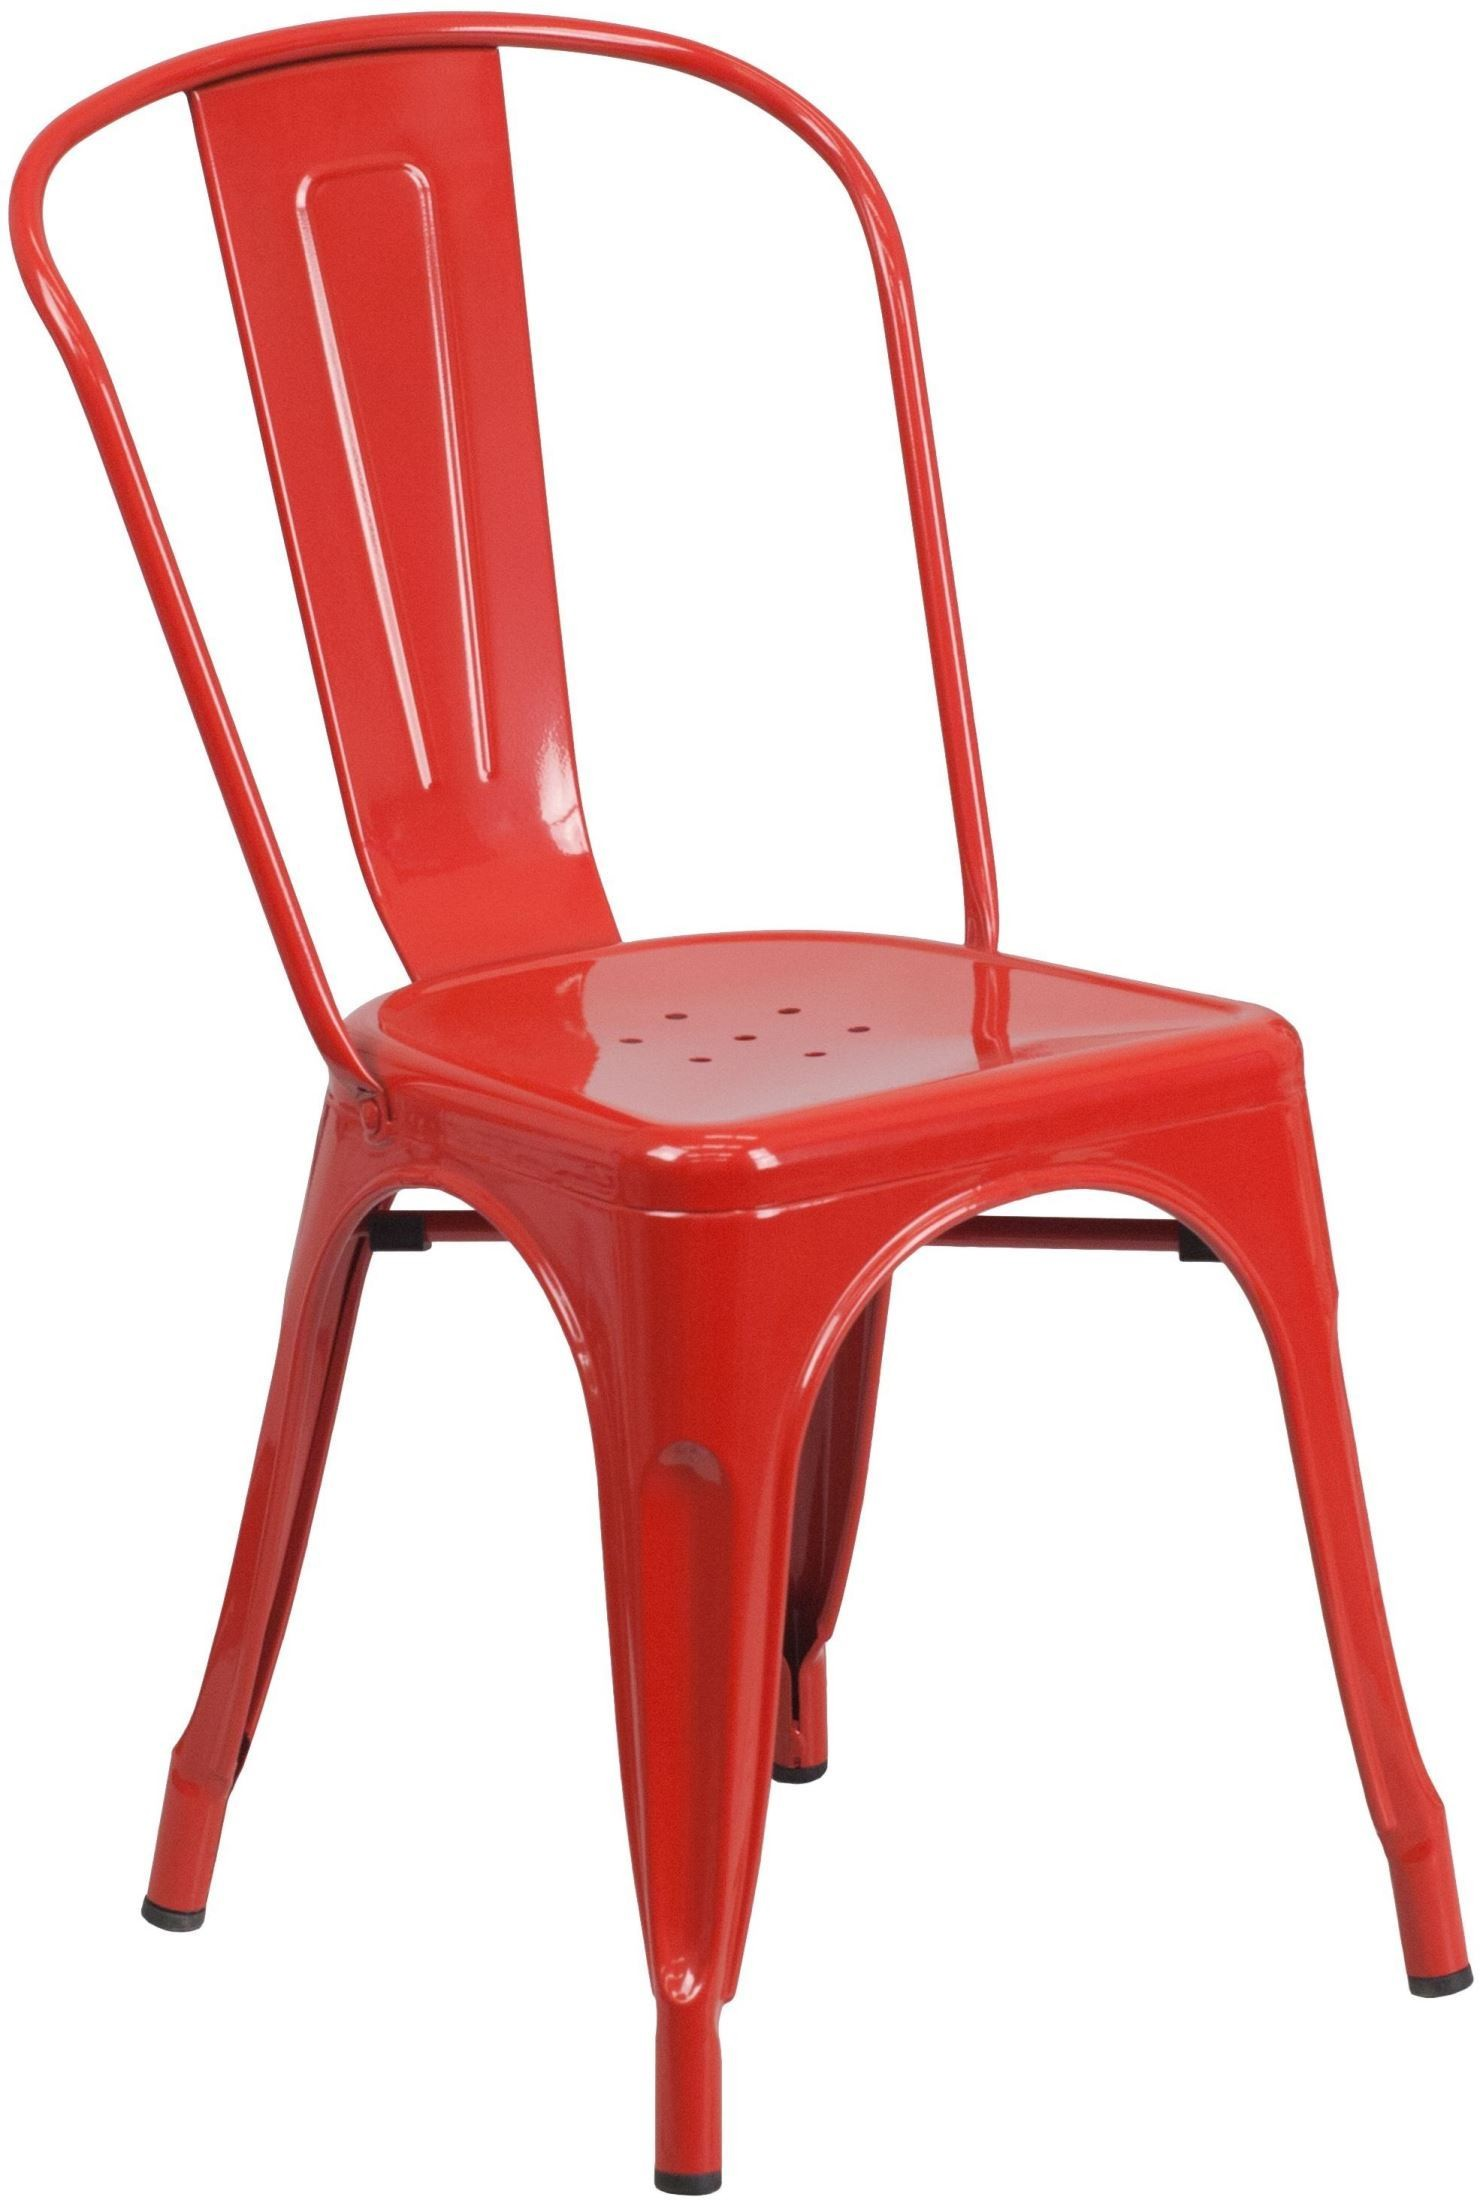 Stackable Lawn Chairs Red Metal Indoor Outdoor Stackable Chair Ch 31230 Red Gg